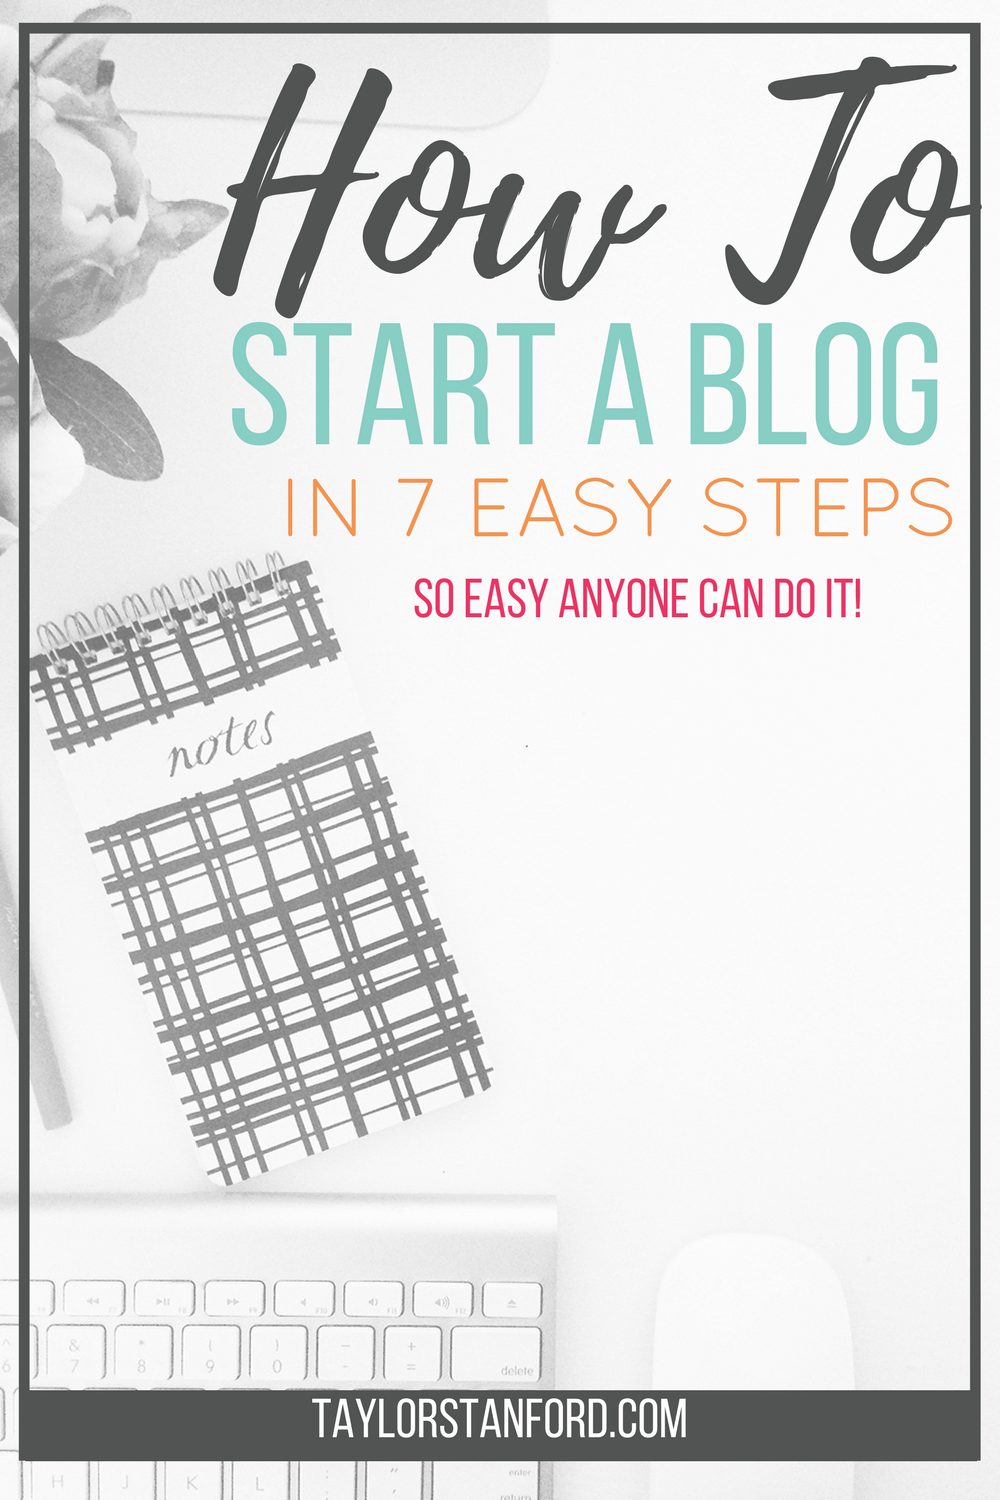 How to start a blog! Here is the simple guide to starting a blog in 2018. This step-by-step guide will walk you through how to set up a blog, how to install wordpress, how to pick a domain name, and much more!